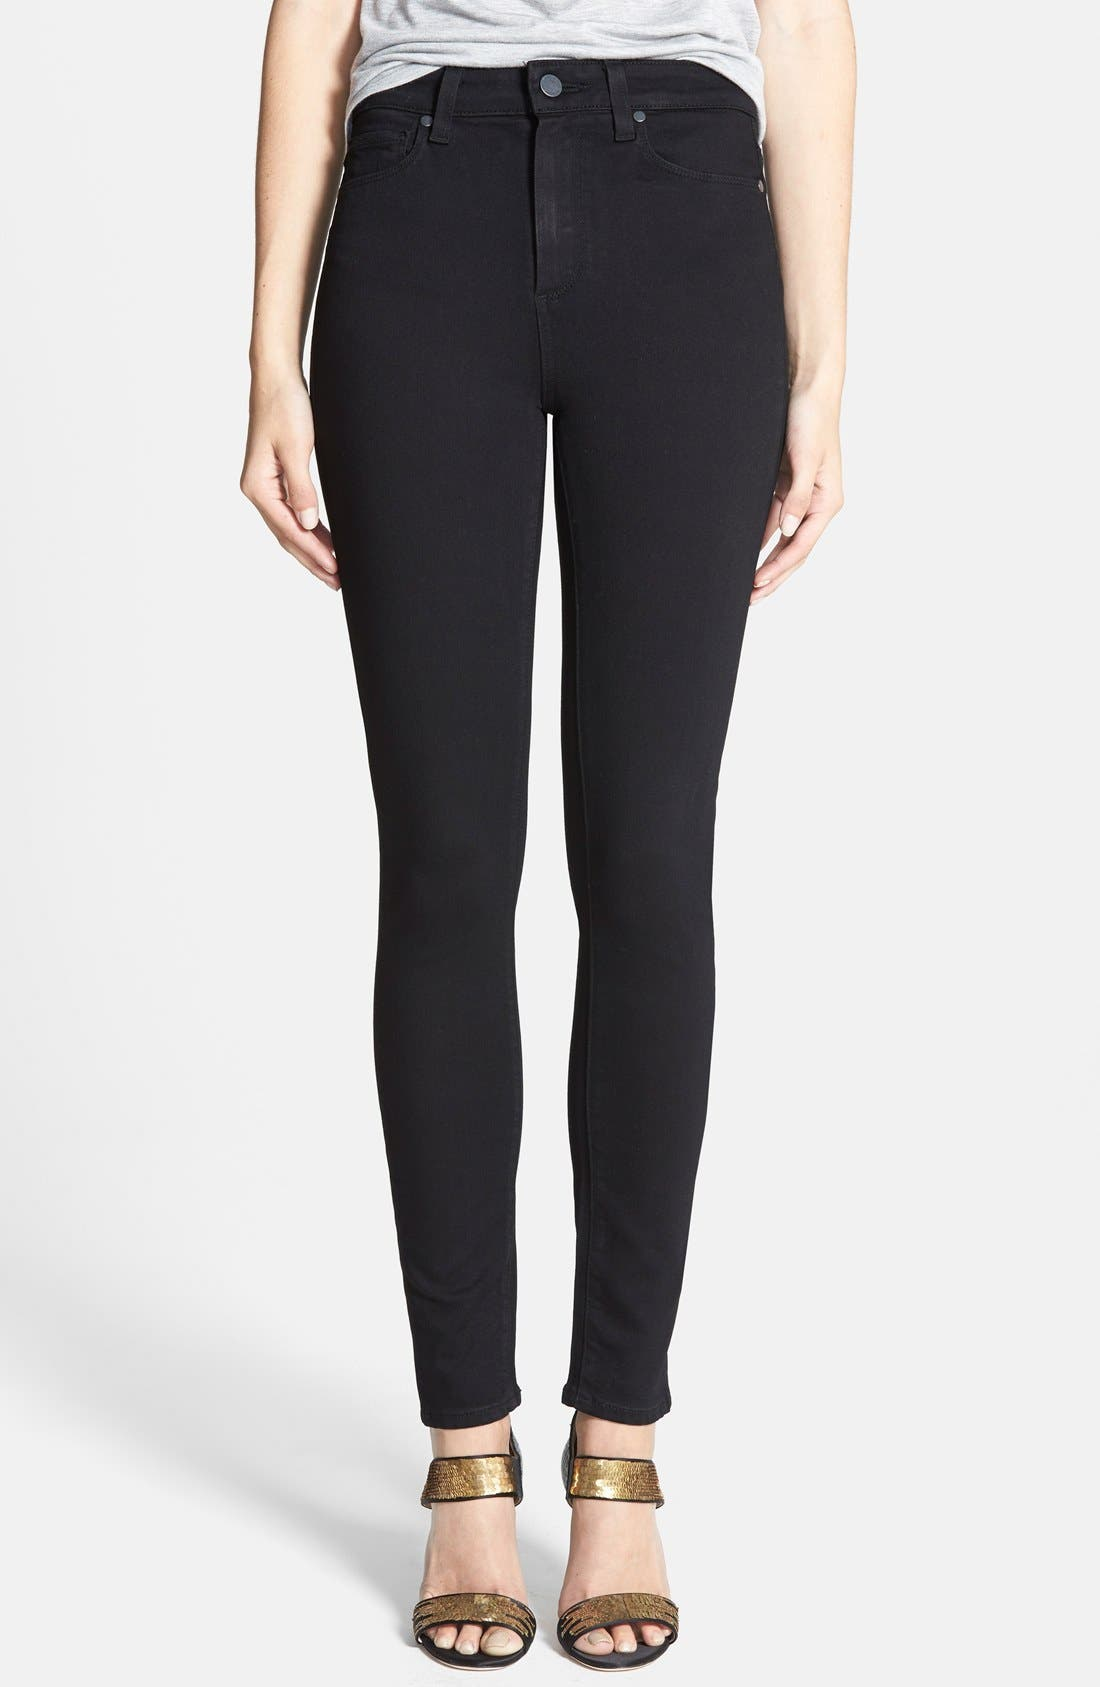 Margo Transcend High Waist Ultra Skinny Jeans,                         Main,                         color, Black Shadow